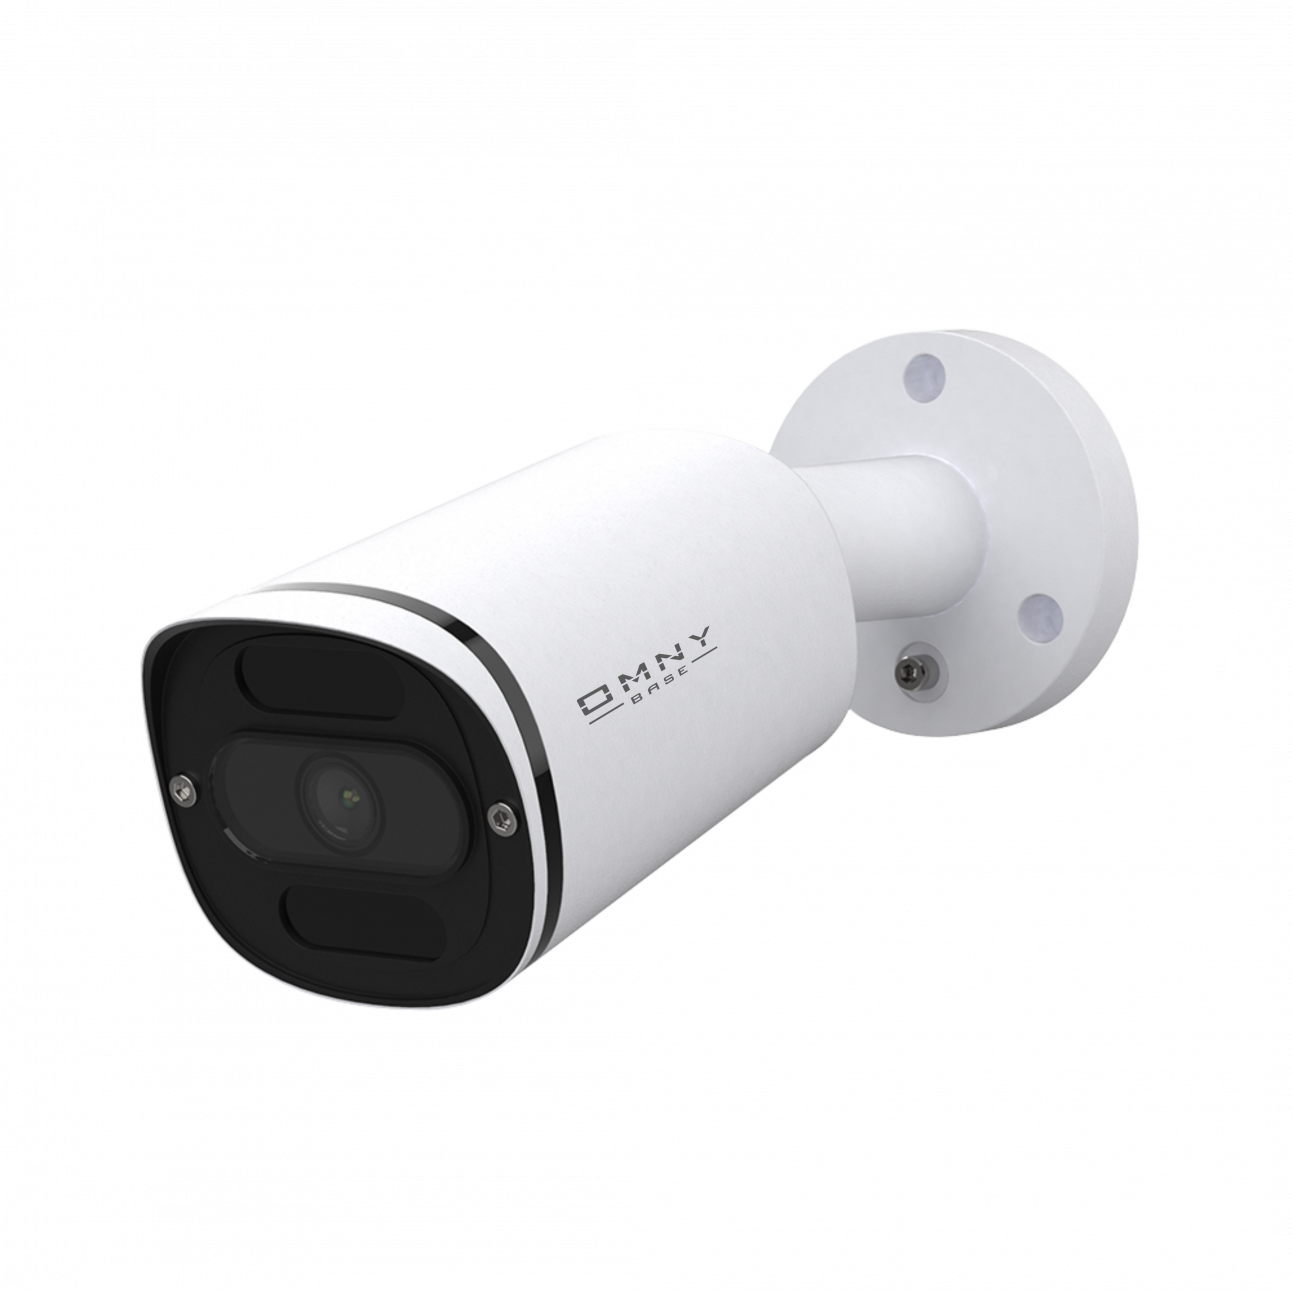 IP camera OMNY BASE miniBullet5E-WDU 28, буллет, 5Мп (2592x1944), 30к/с, 2.8мм фиксированный, EasyMic, 12В DC, 802.3af, ИК до 30м, WDR 120dB, USB2.0